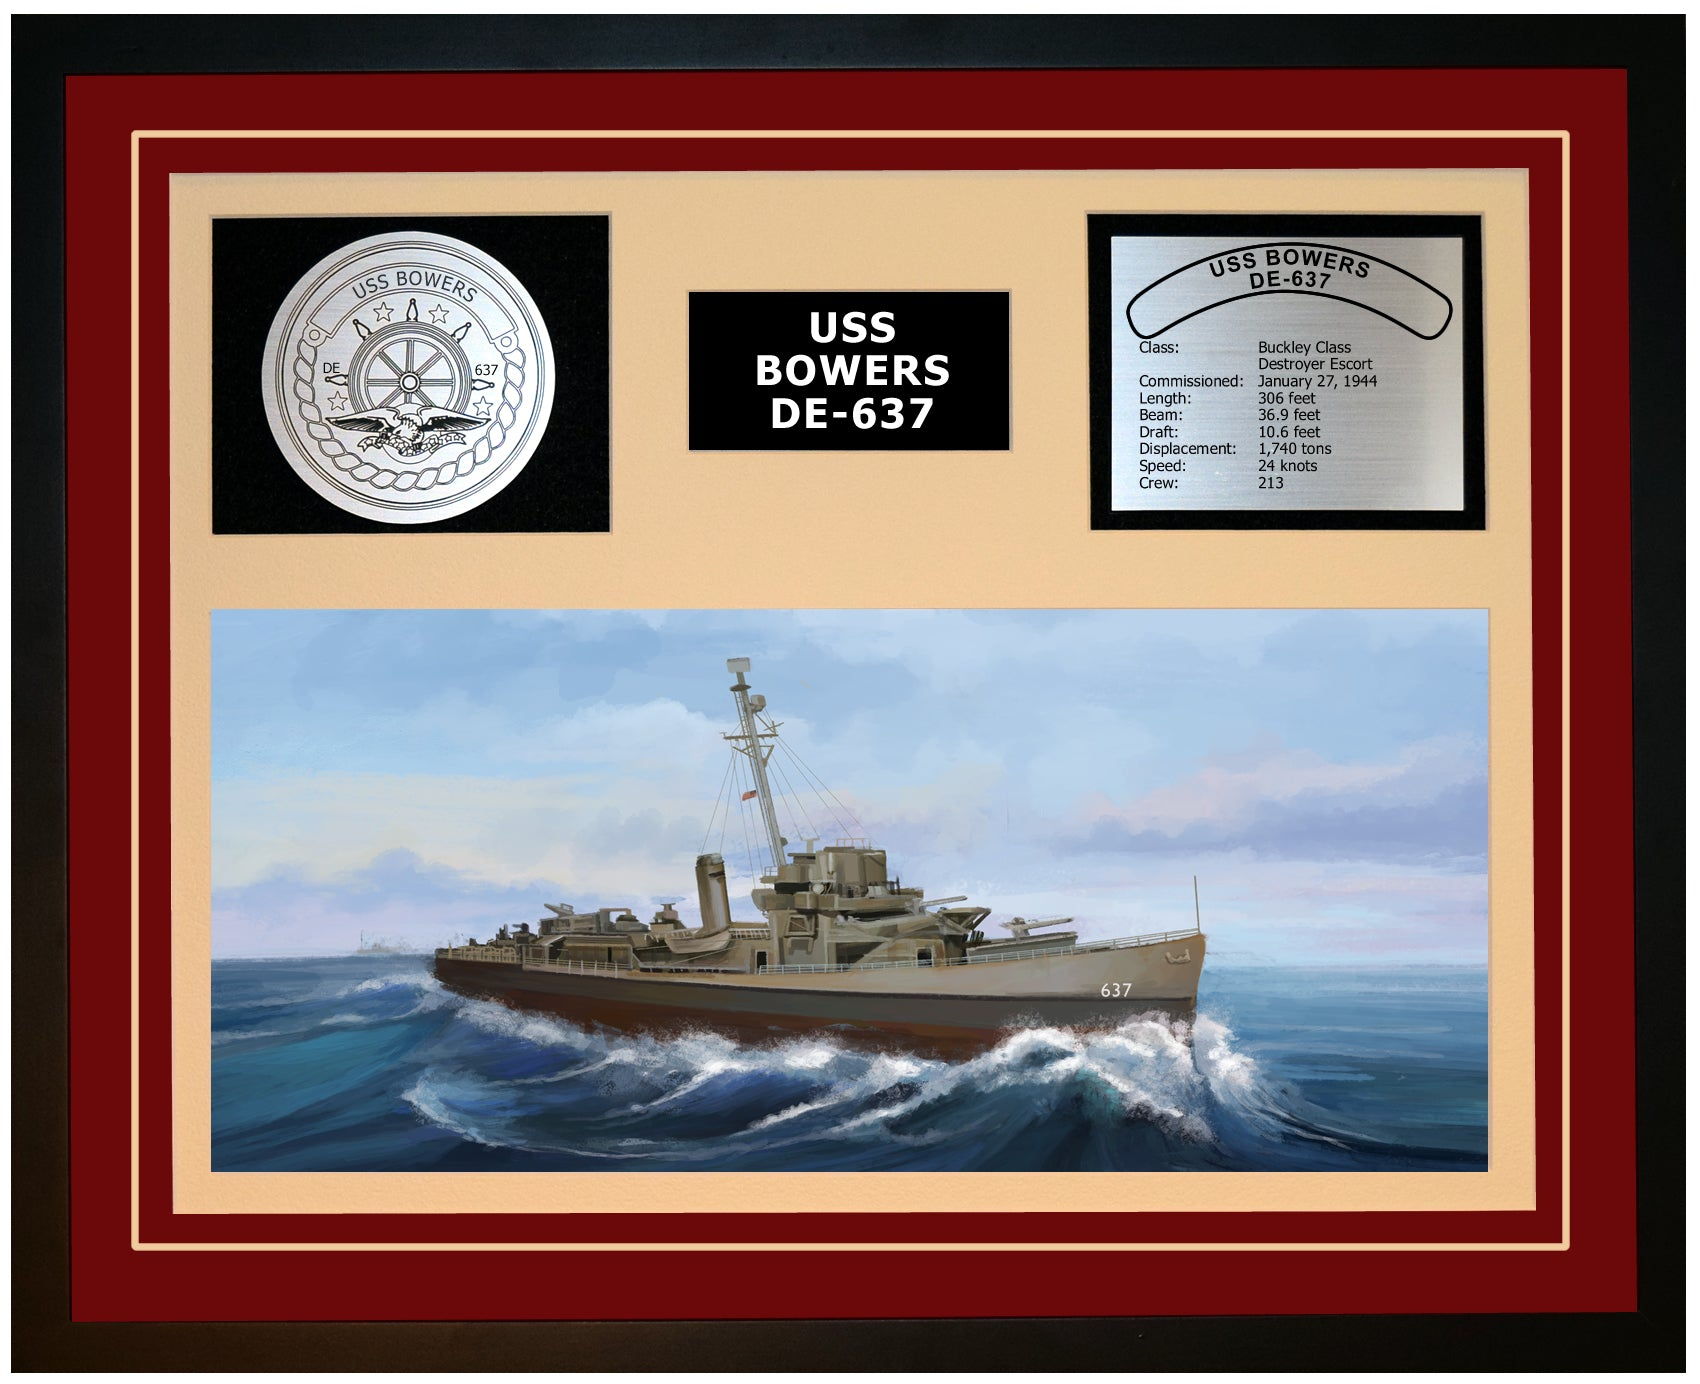 USS BOWERS DE-637 Framed Navy Ship Display Burgundy